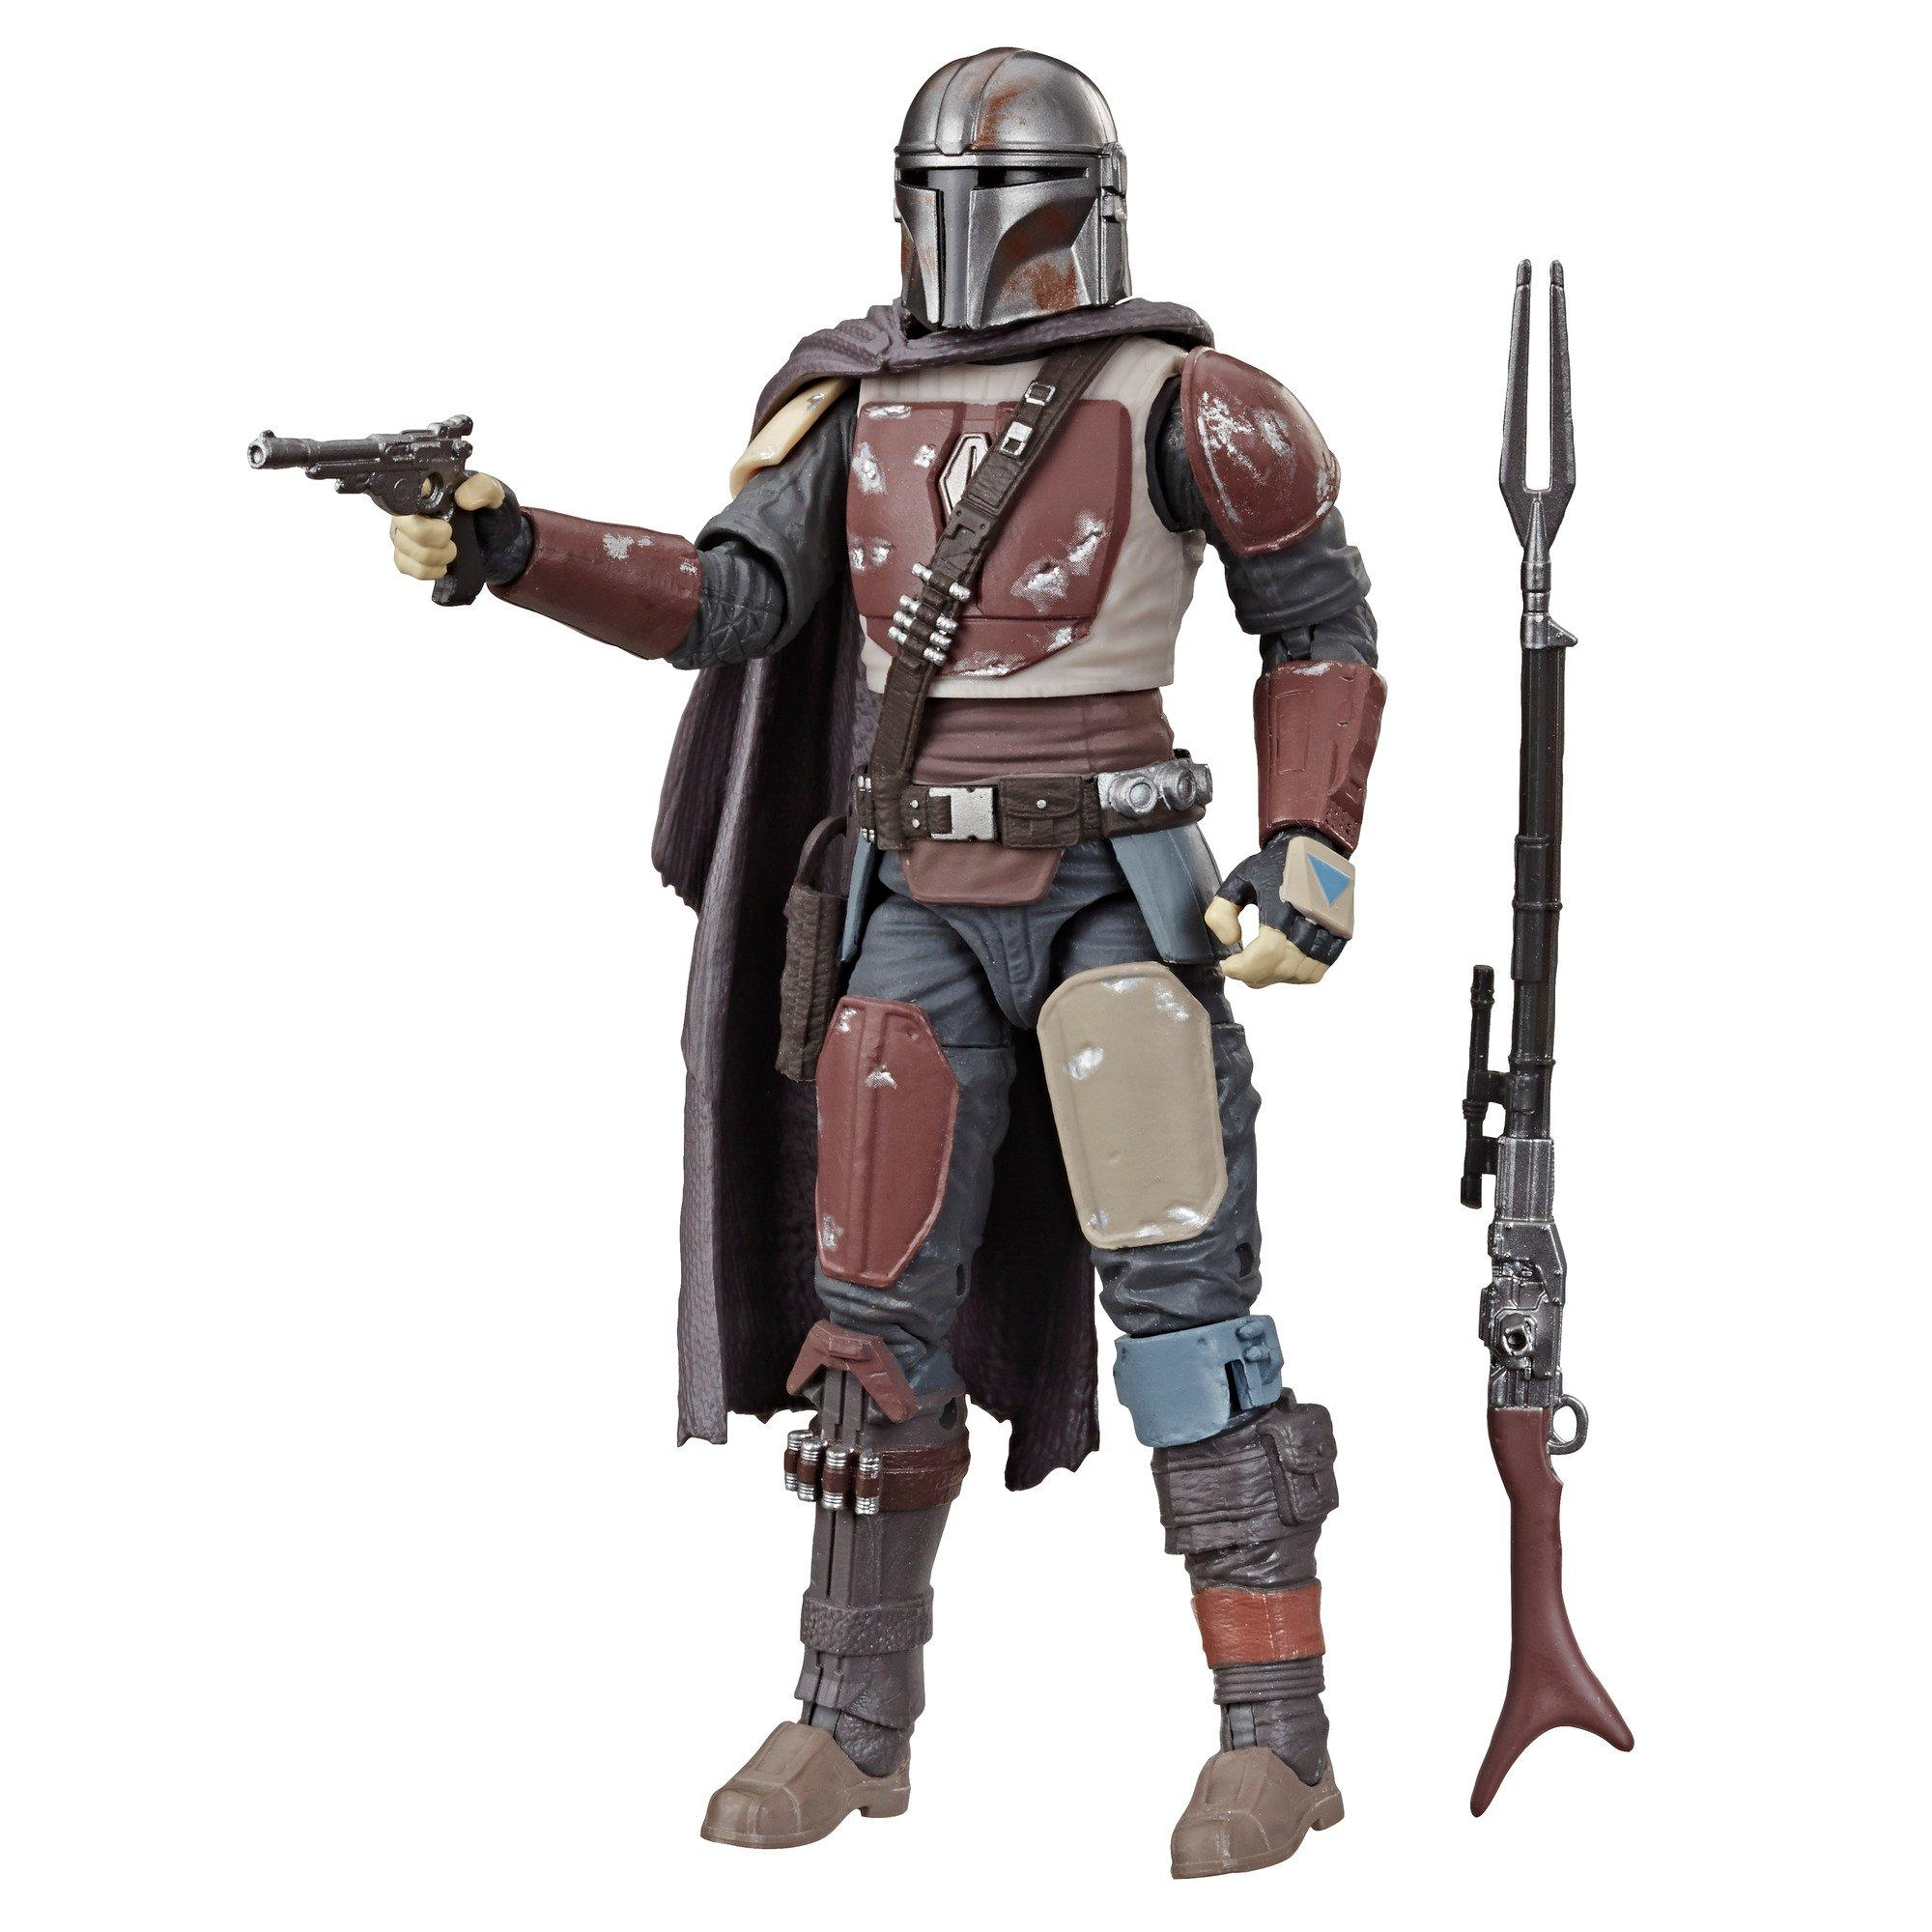 Star Wars The Mandalorian Black Series figurine The Mandalorian 15 cm preorder